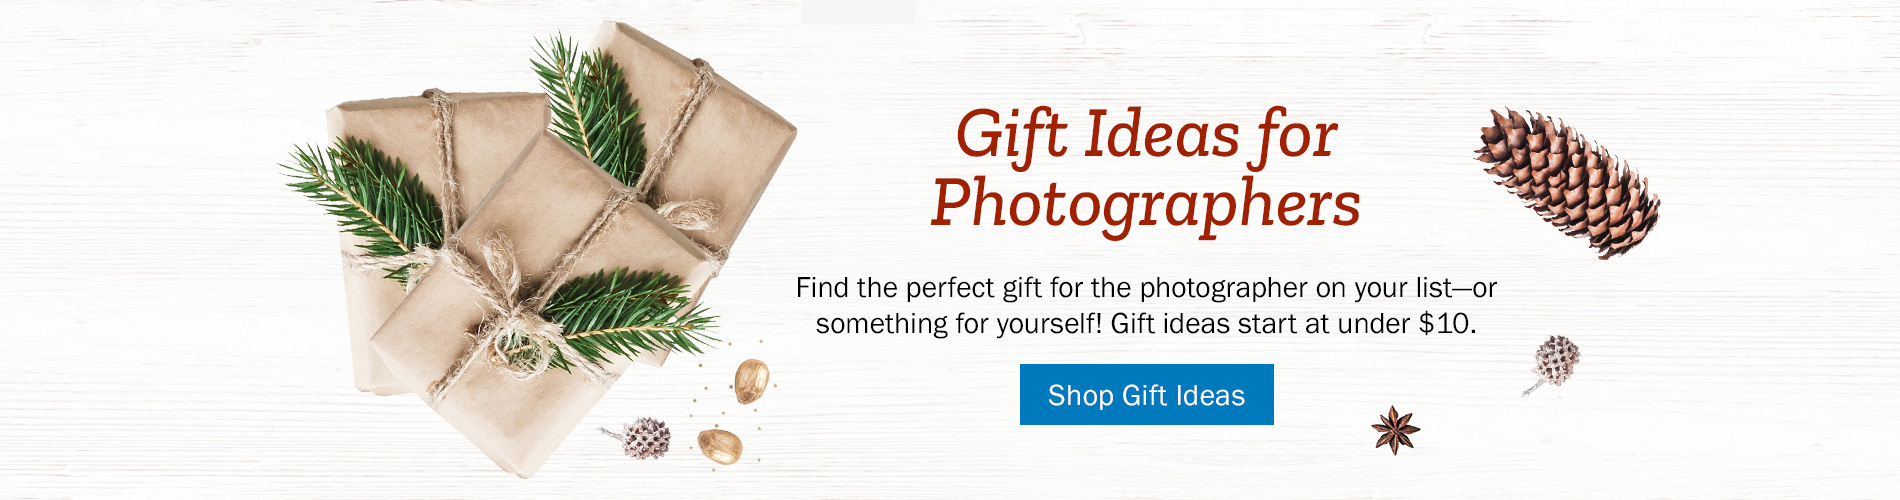 Gift Ideas for Photographers - Find the perfect gift for the photographer on your list—or something for yourself! Gift ideas start at under $10. Shop Gift Ideas >